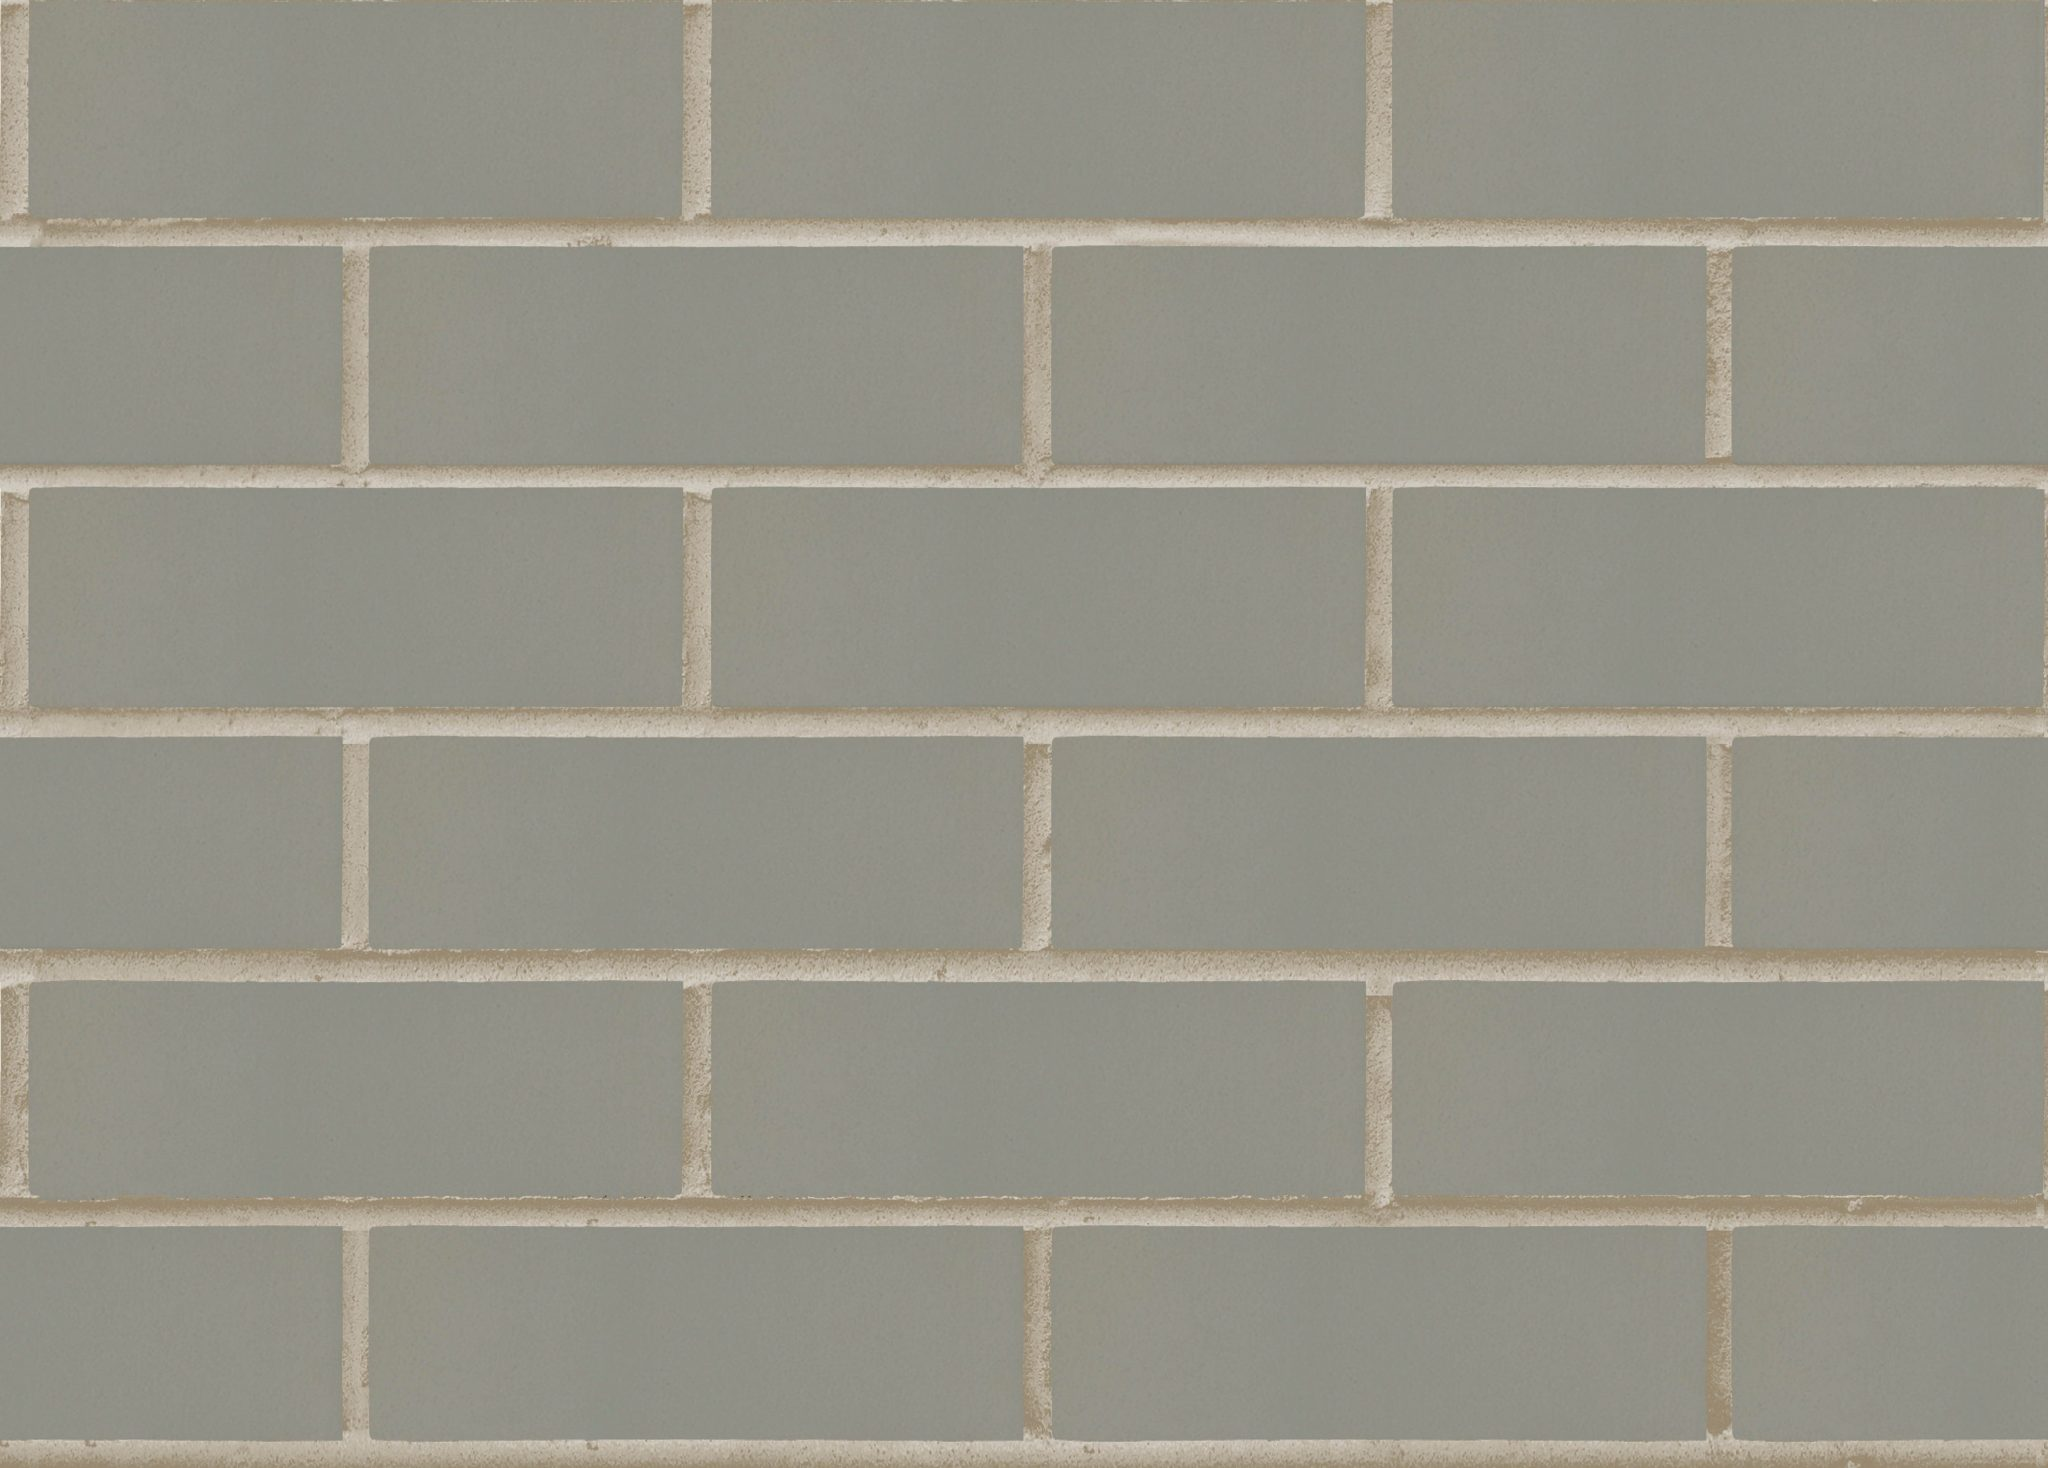 UltraSmoothChill230x76-110-240 - NSW Bricks